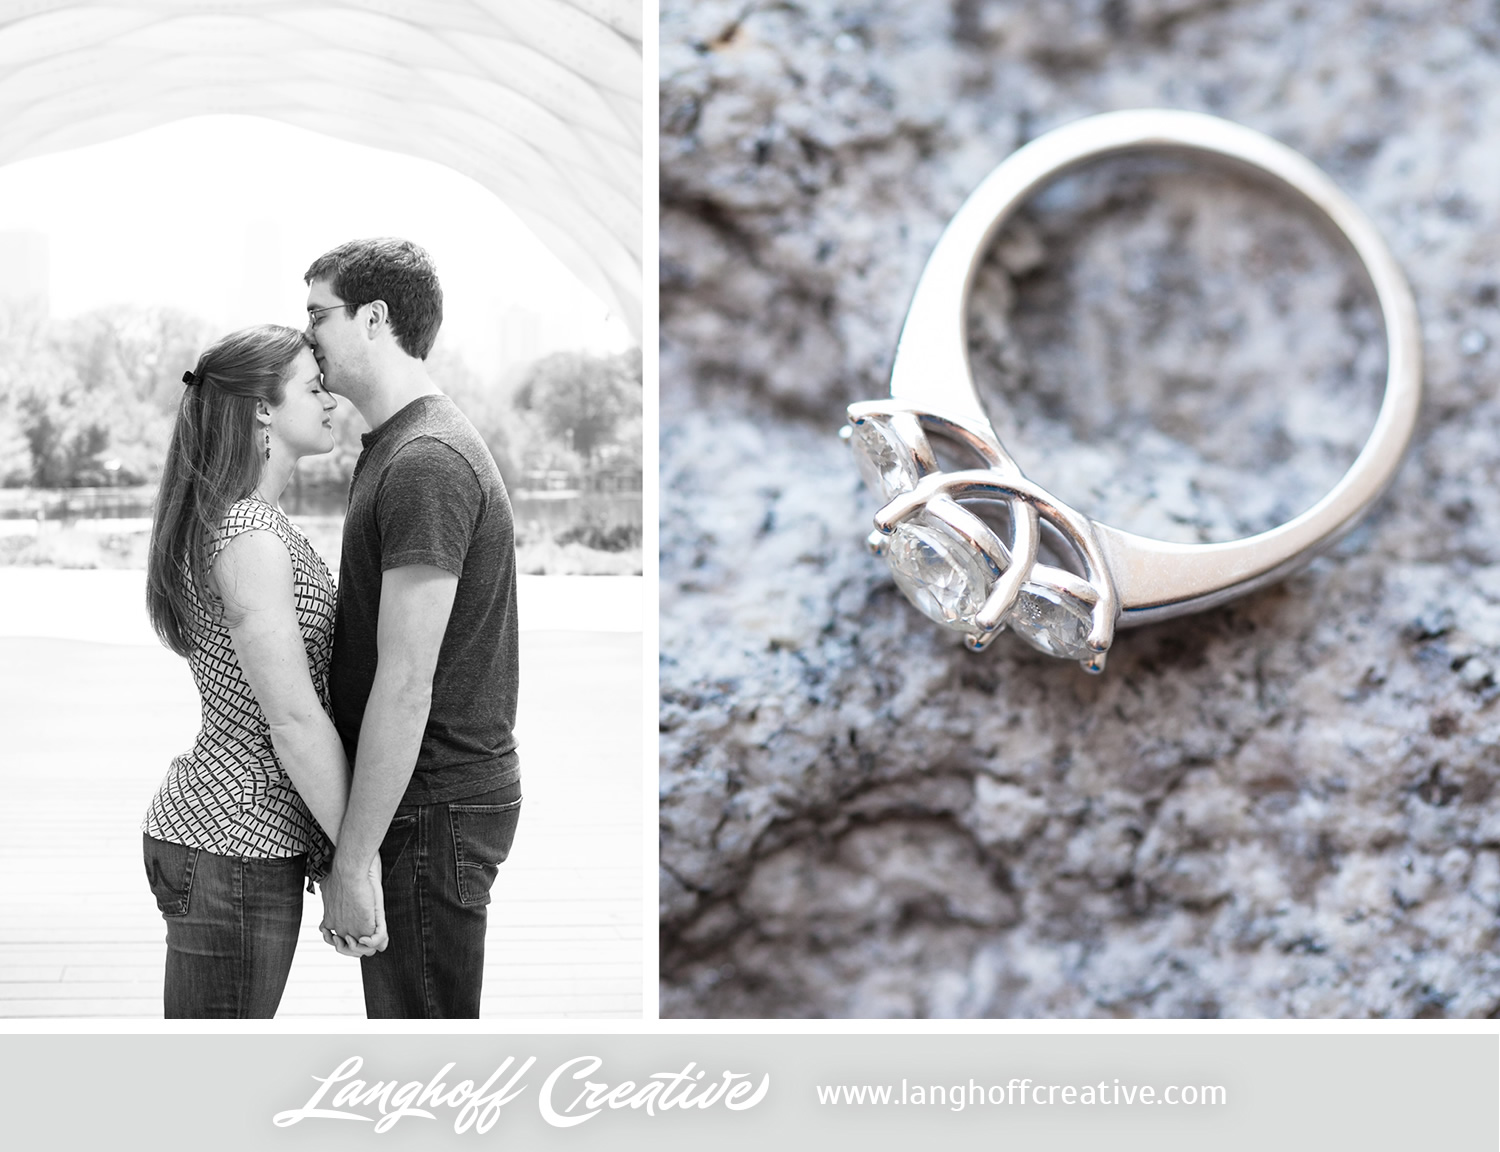 ChicagoEngagement-LincolnParkZoo-Engaged-LanghoffCreative-DestinationWeddingPhotographers-2014-ZacRachel-16-photo.jpg